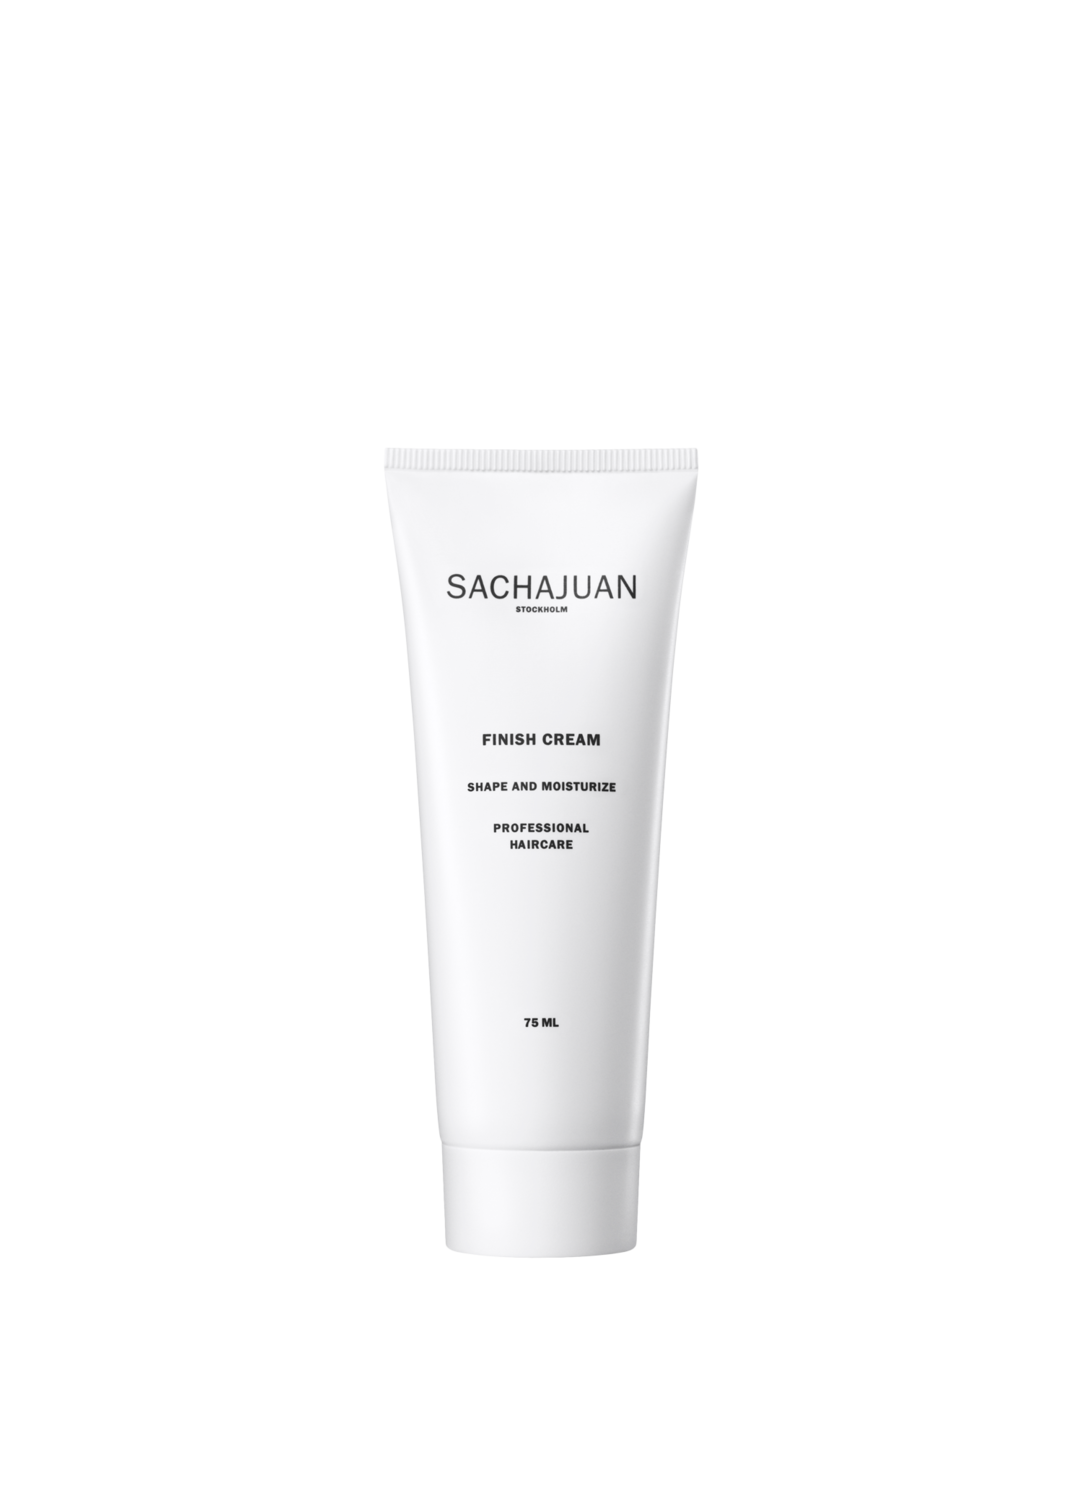 sachajuan finish cream